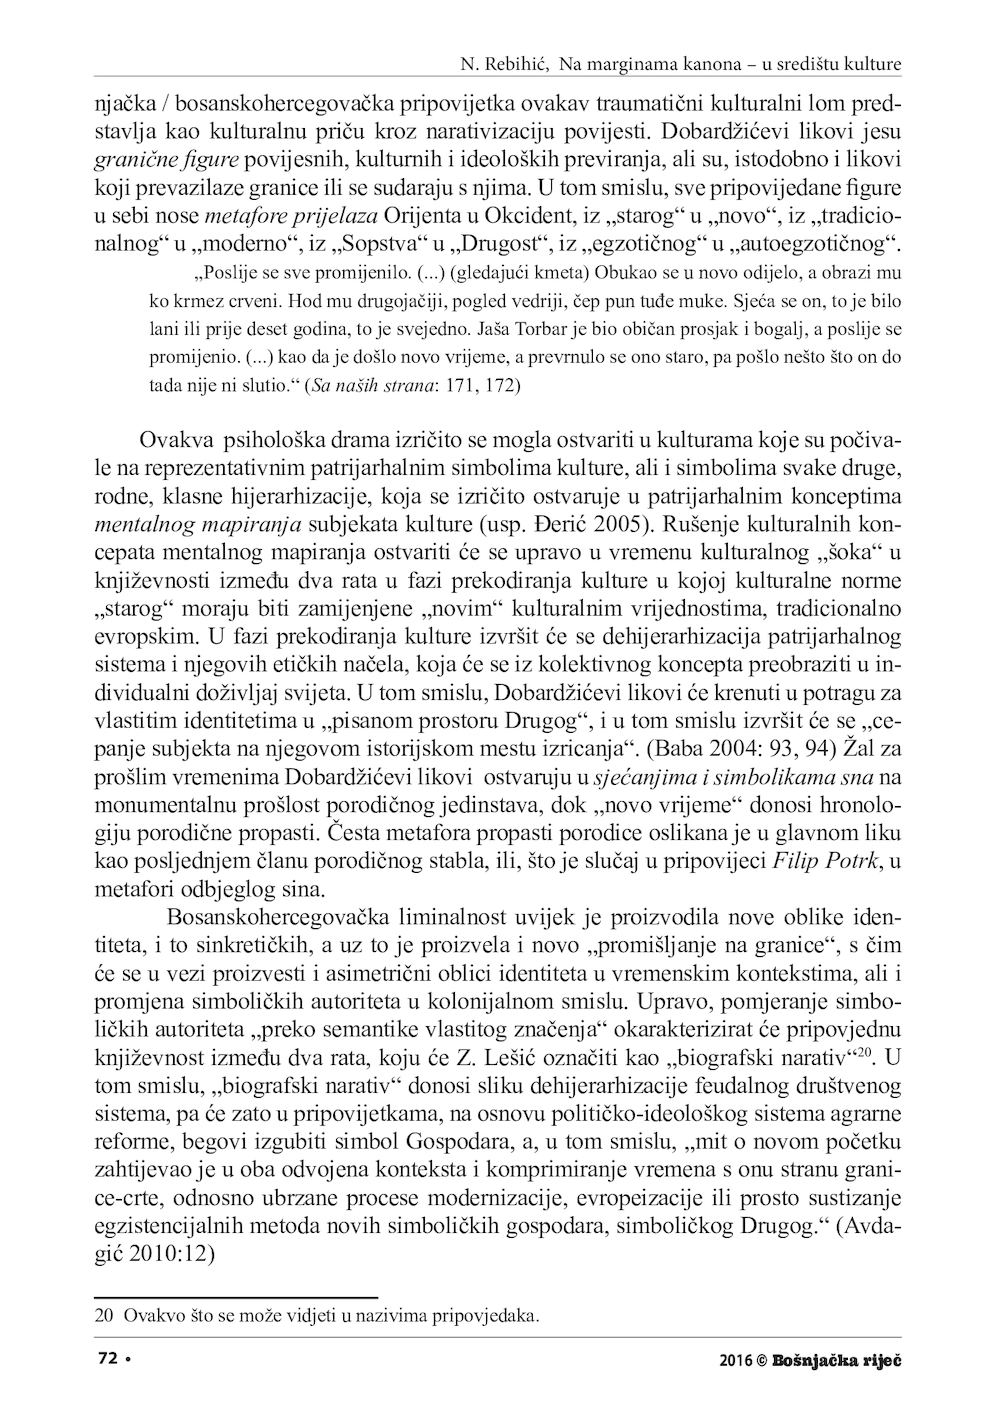 Page 72